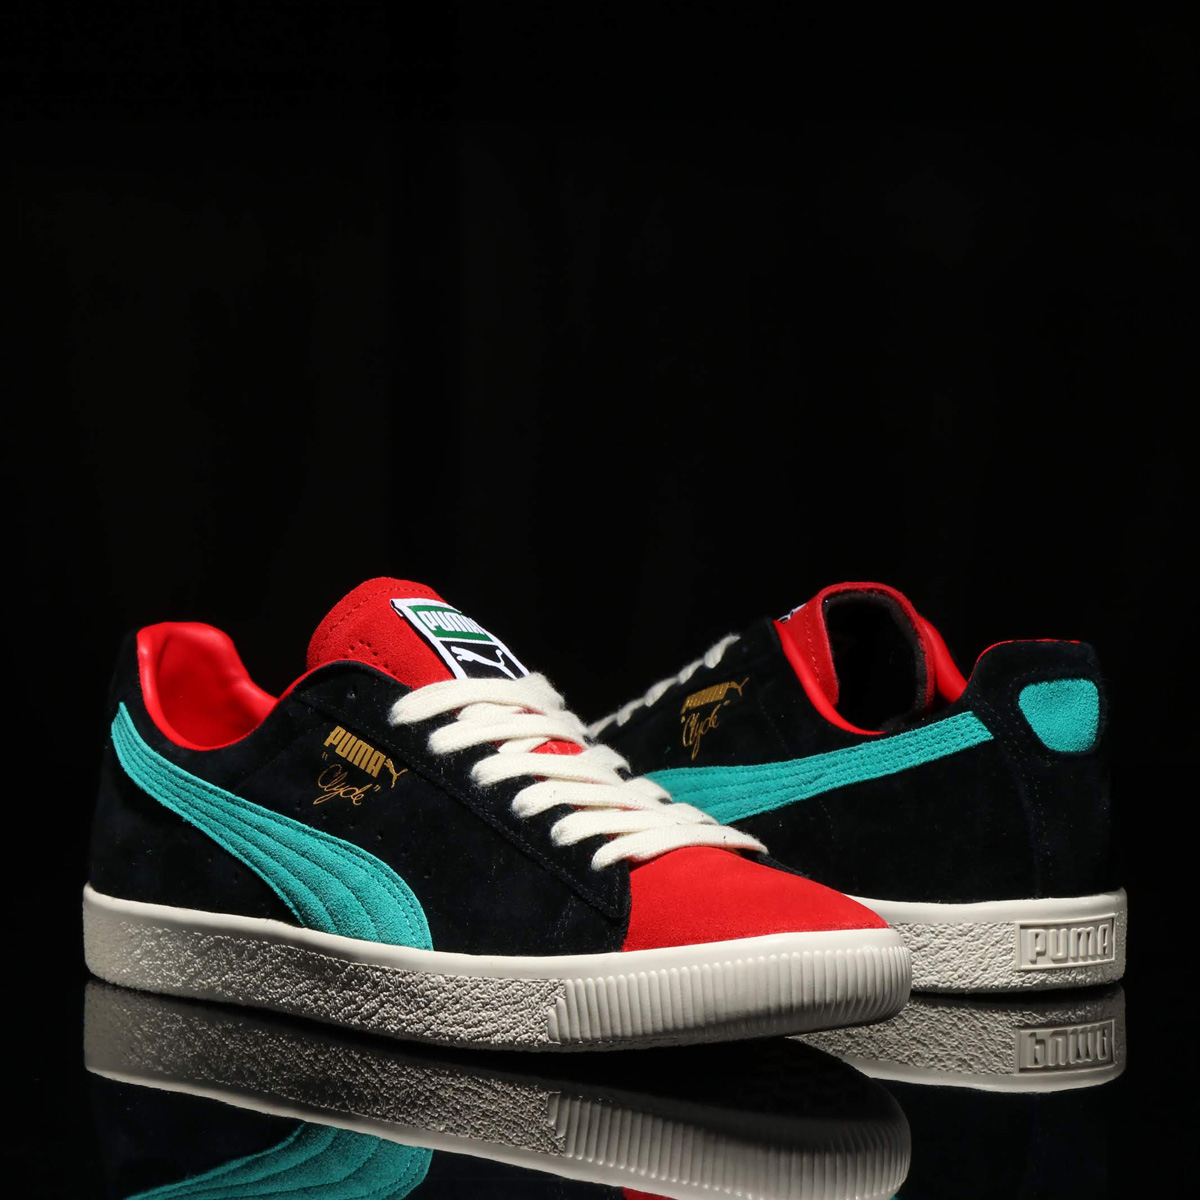 PUMA CLYDE FROM THE ARCHIVE (プーマ クライド フロム ザ アーカイブ) HIGH RISK RED【メンズ レディース スニーカー】18FA-S